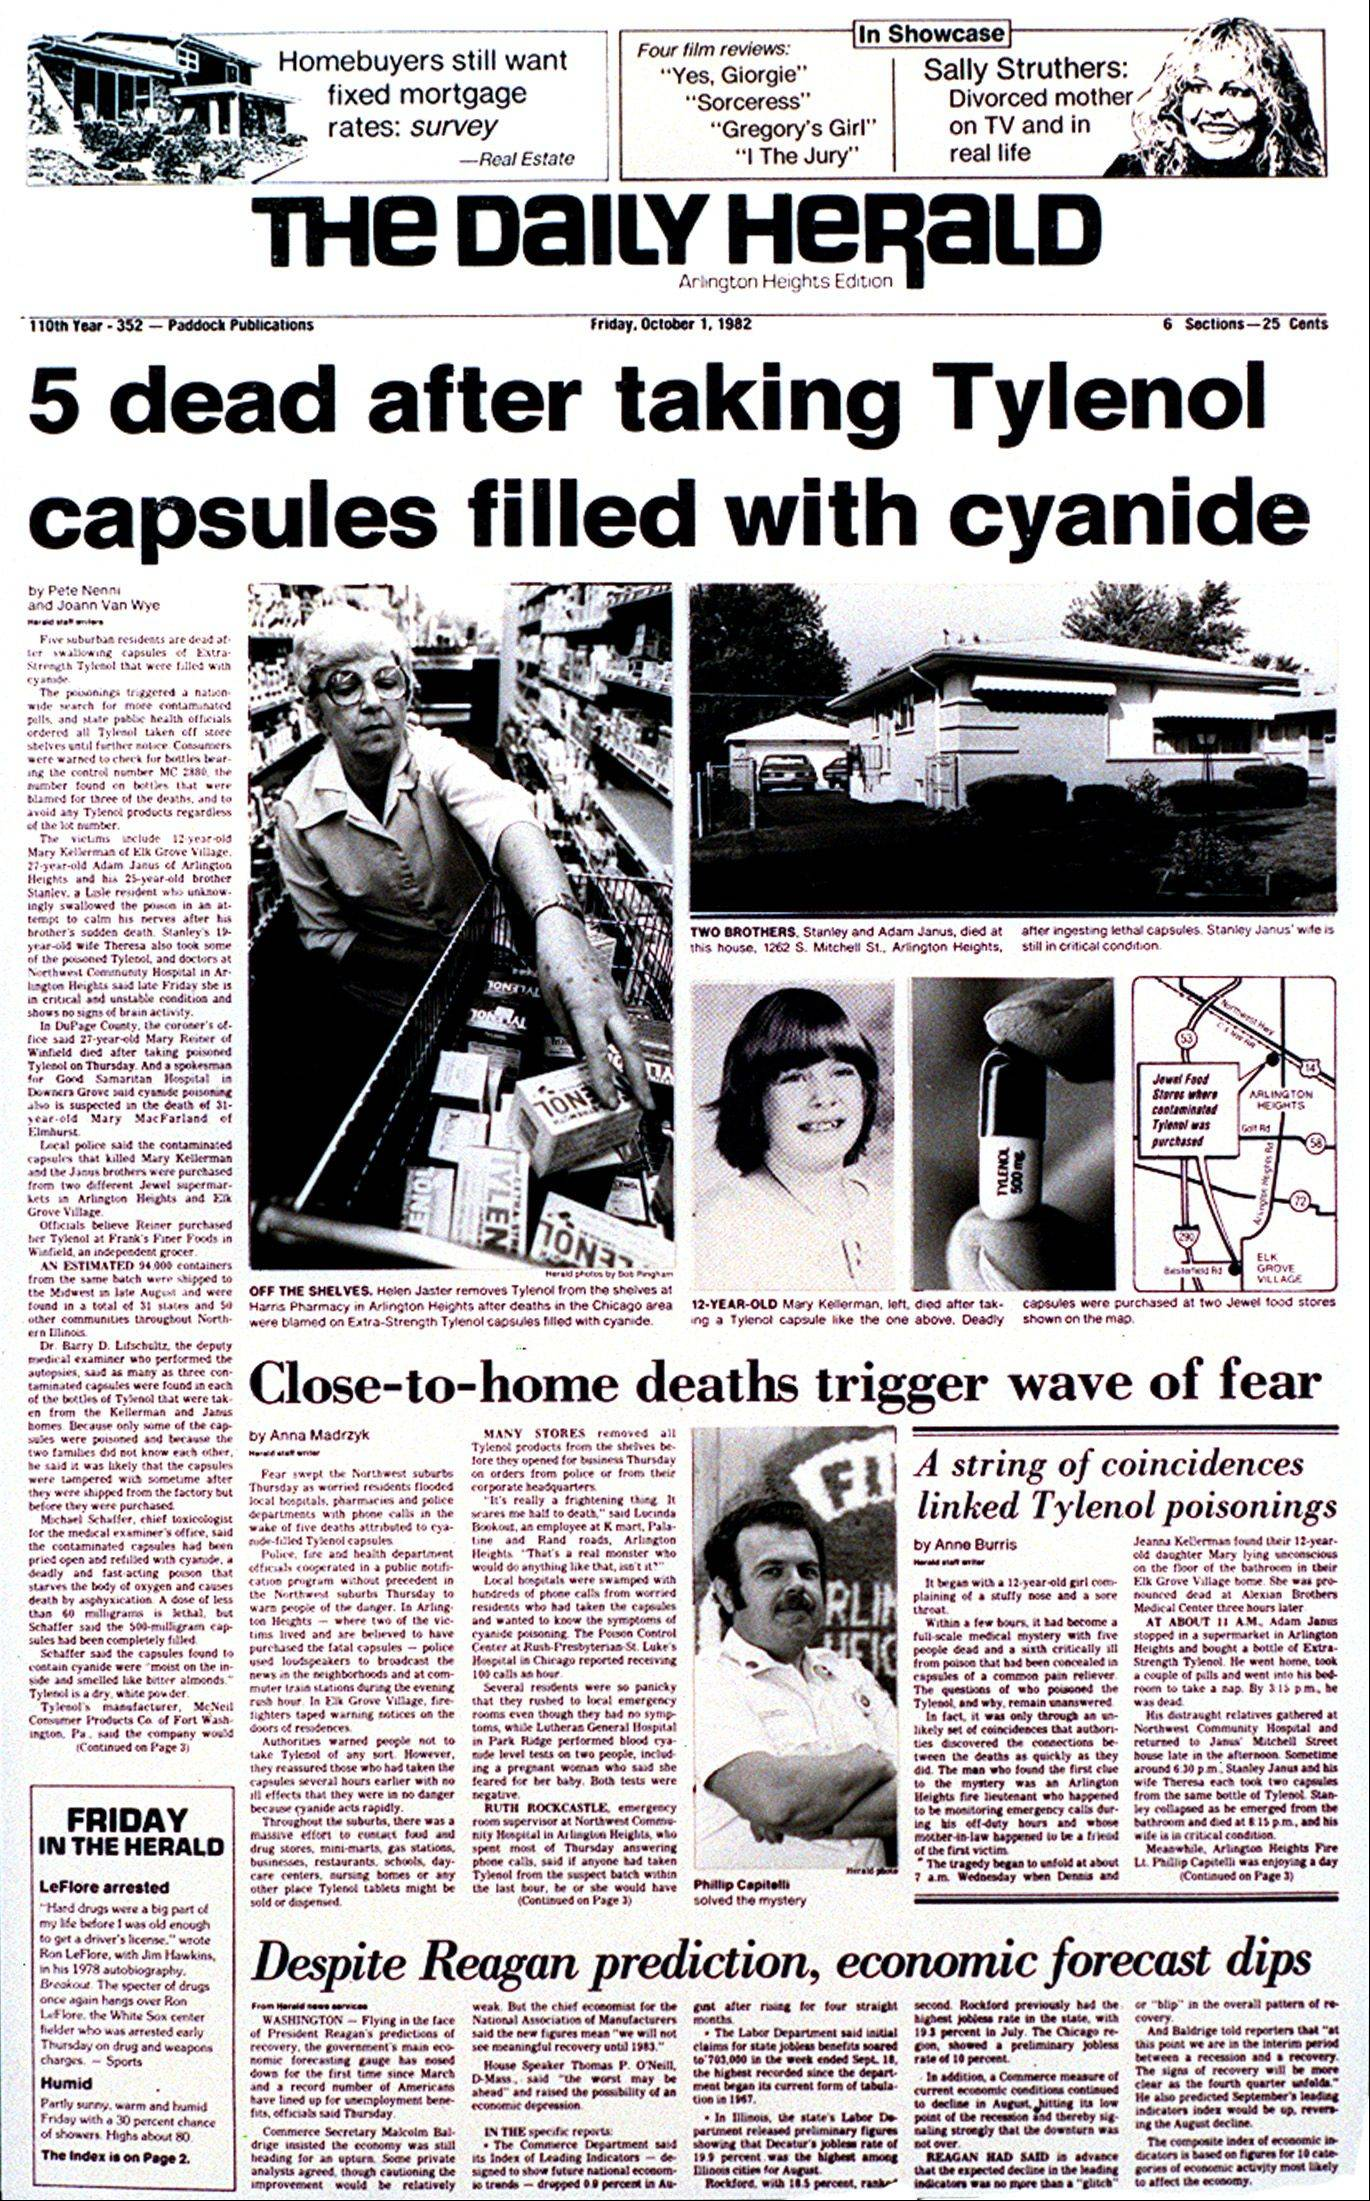 The Daily Herald's front page in 1982, when the Tylenol poisoning story broke.